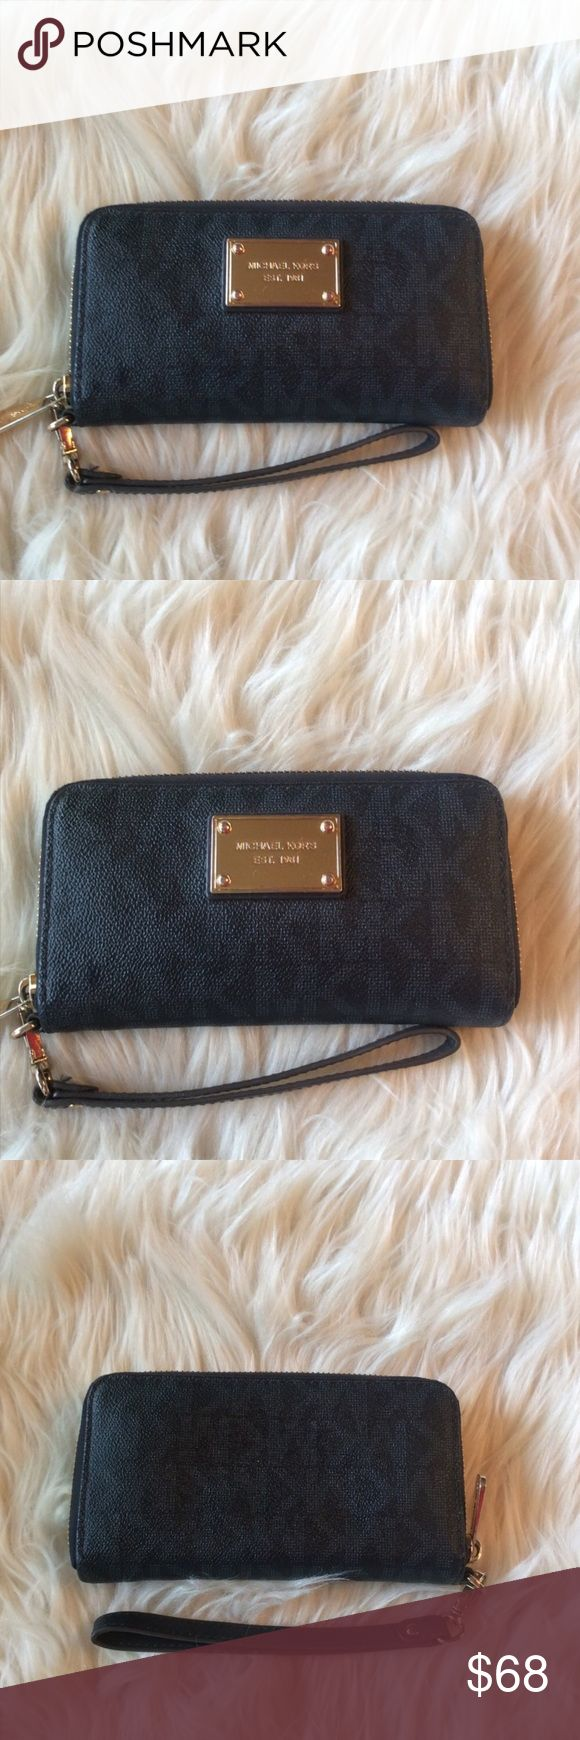 Michael Kors Wristlet Zip around wallet with room for phone, cash, coins and cards. Good condition. Zipper shows a little wear as pictured. 7x4. Should hold a phone up to 3x5.5. Navy blue with gold. MICHAEL Michael Kors Bags Clutches & Wristlets